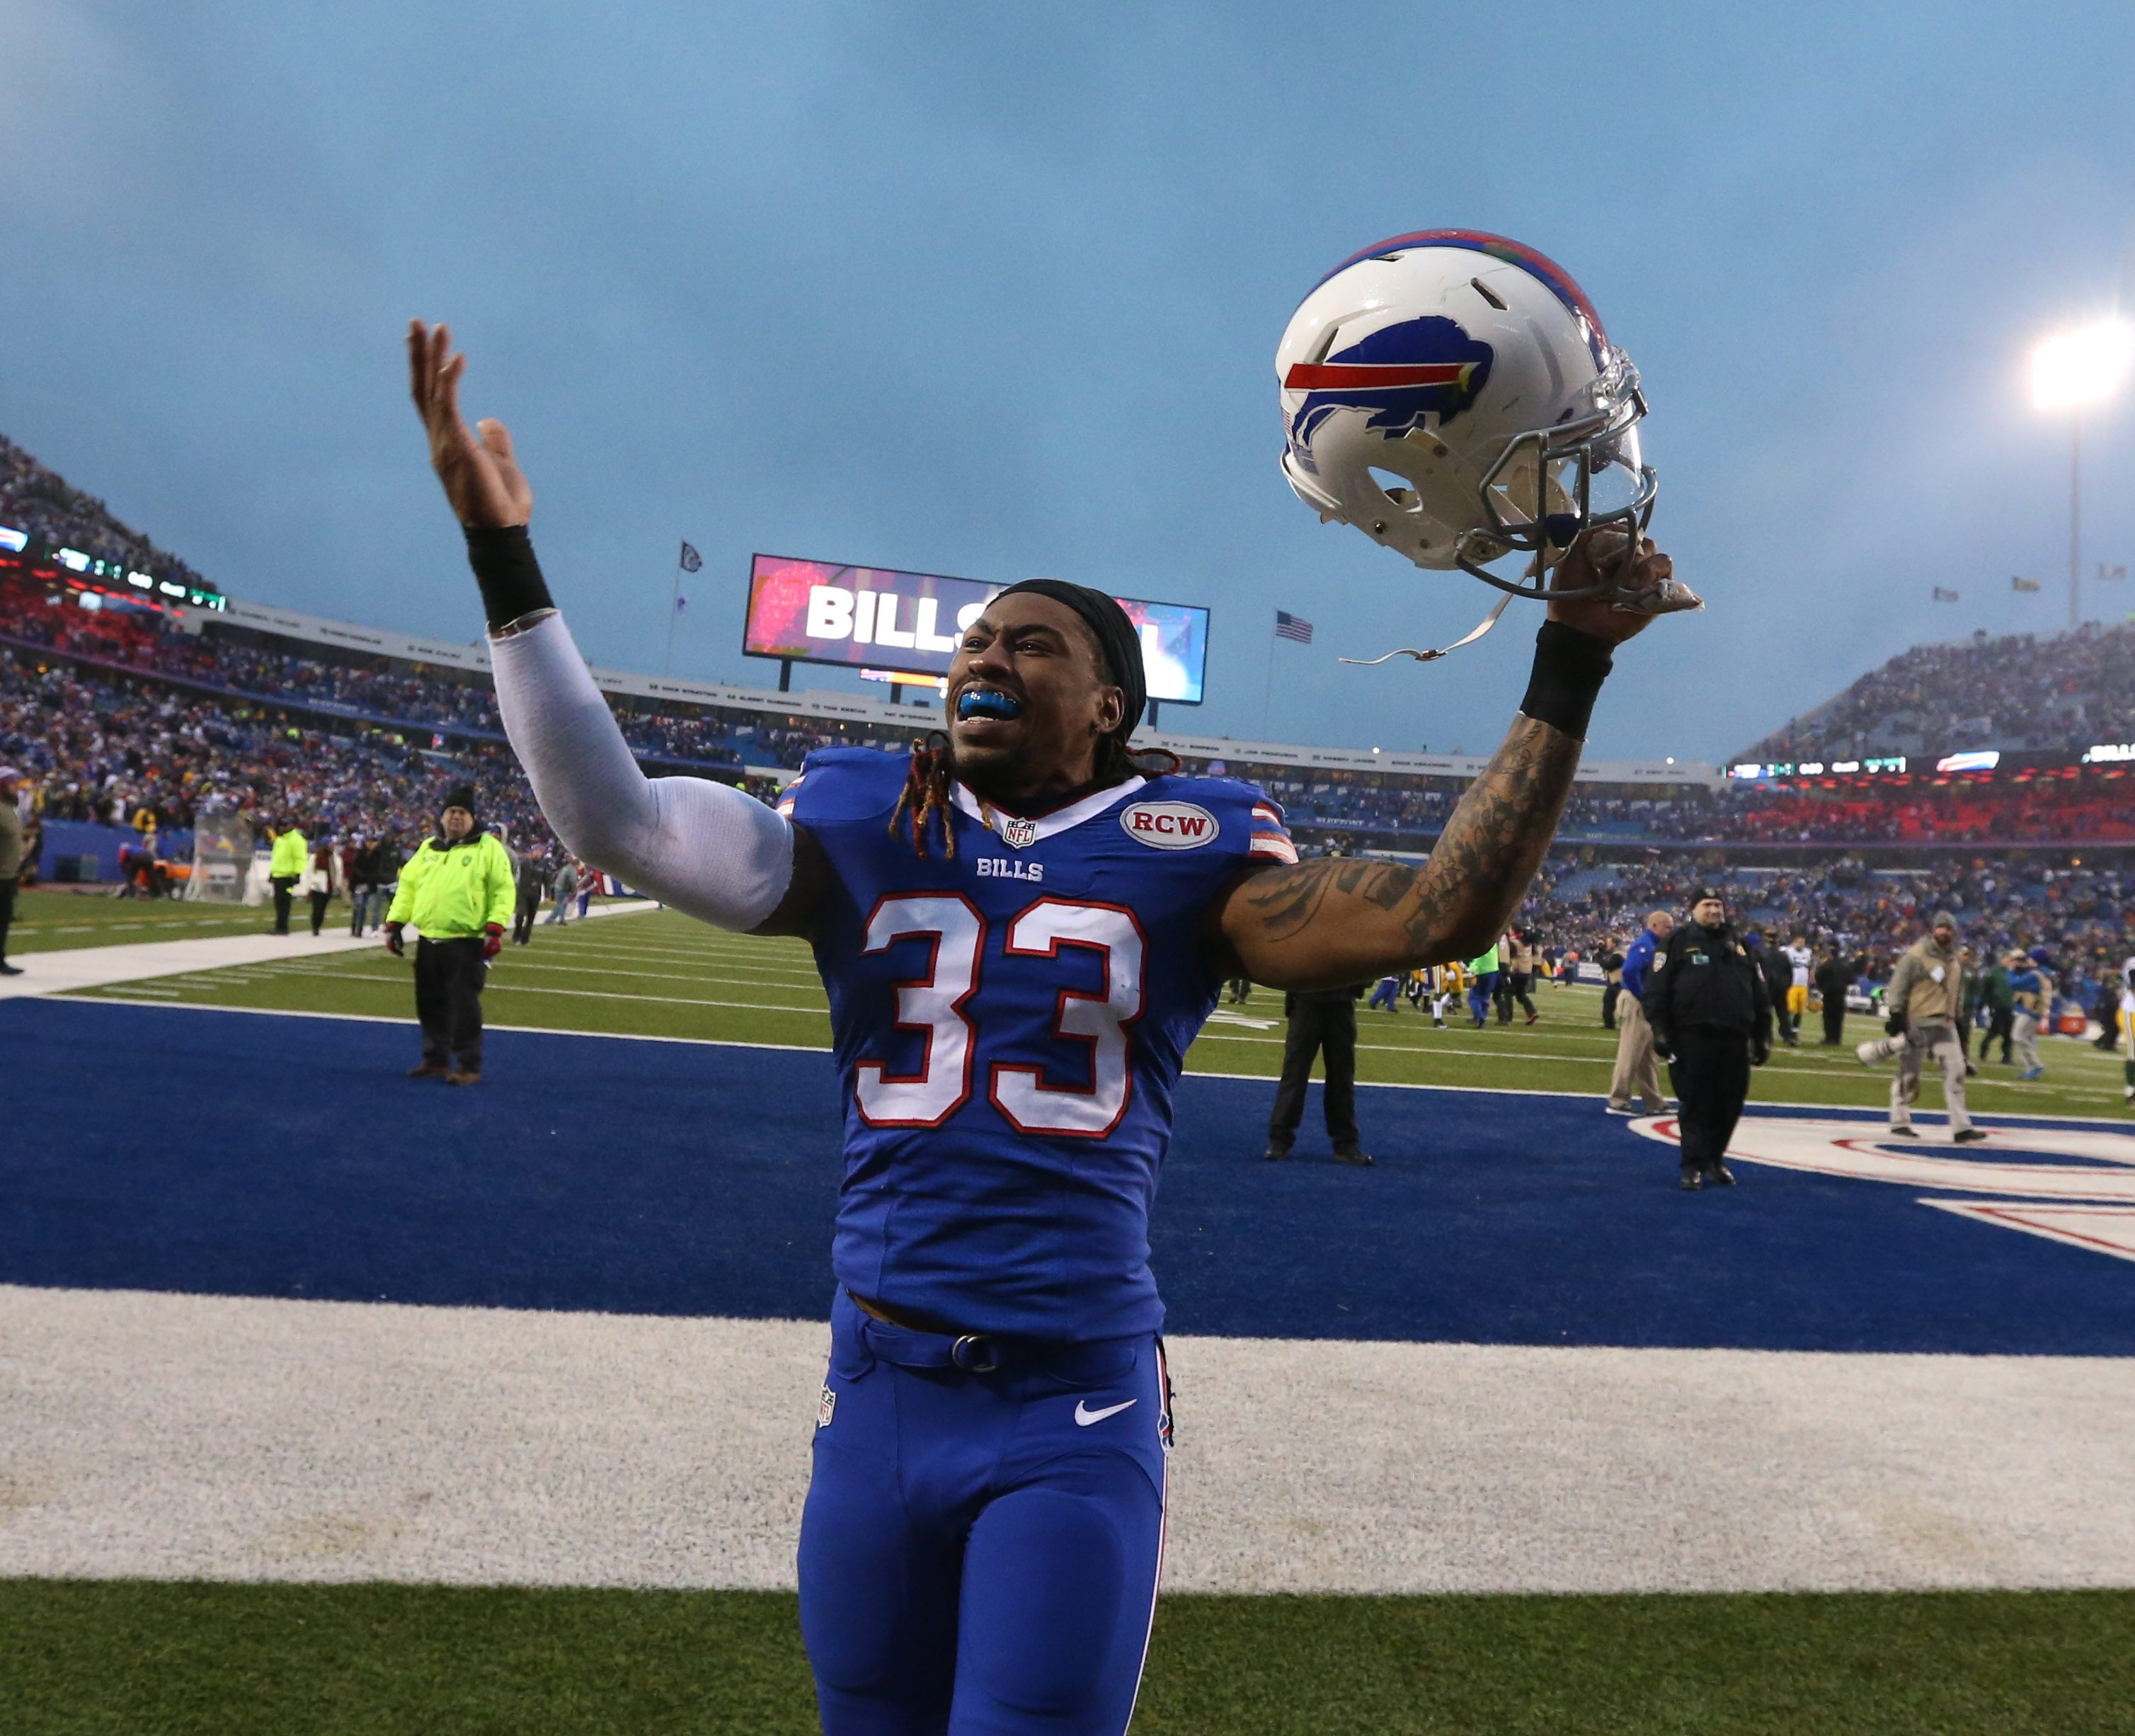 Bills cornerback Ron Brooks has been working hard in the offseason, getting ready to face some tough competition at his position once training camp opens.